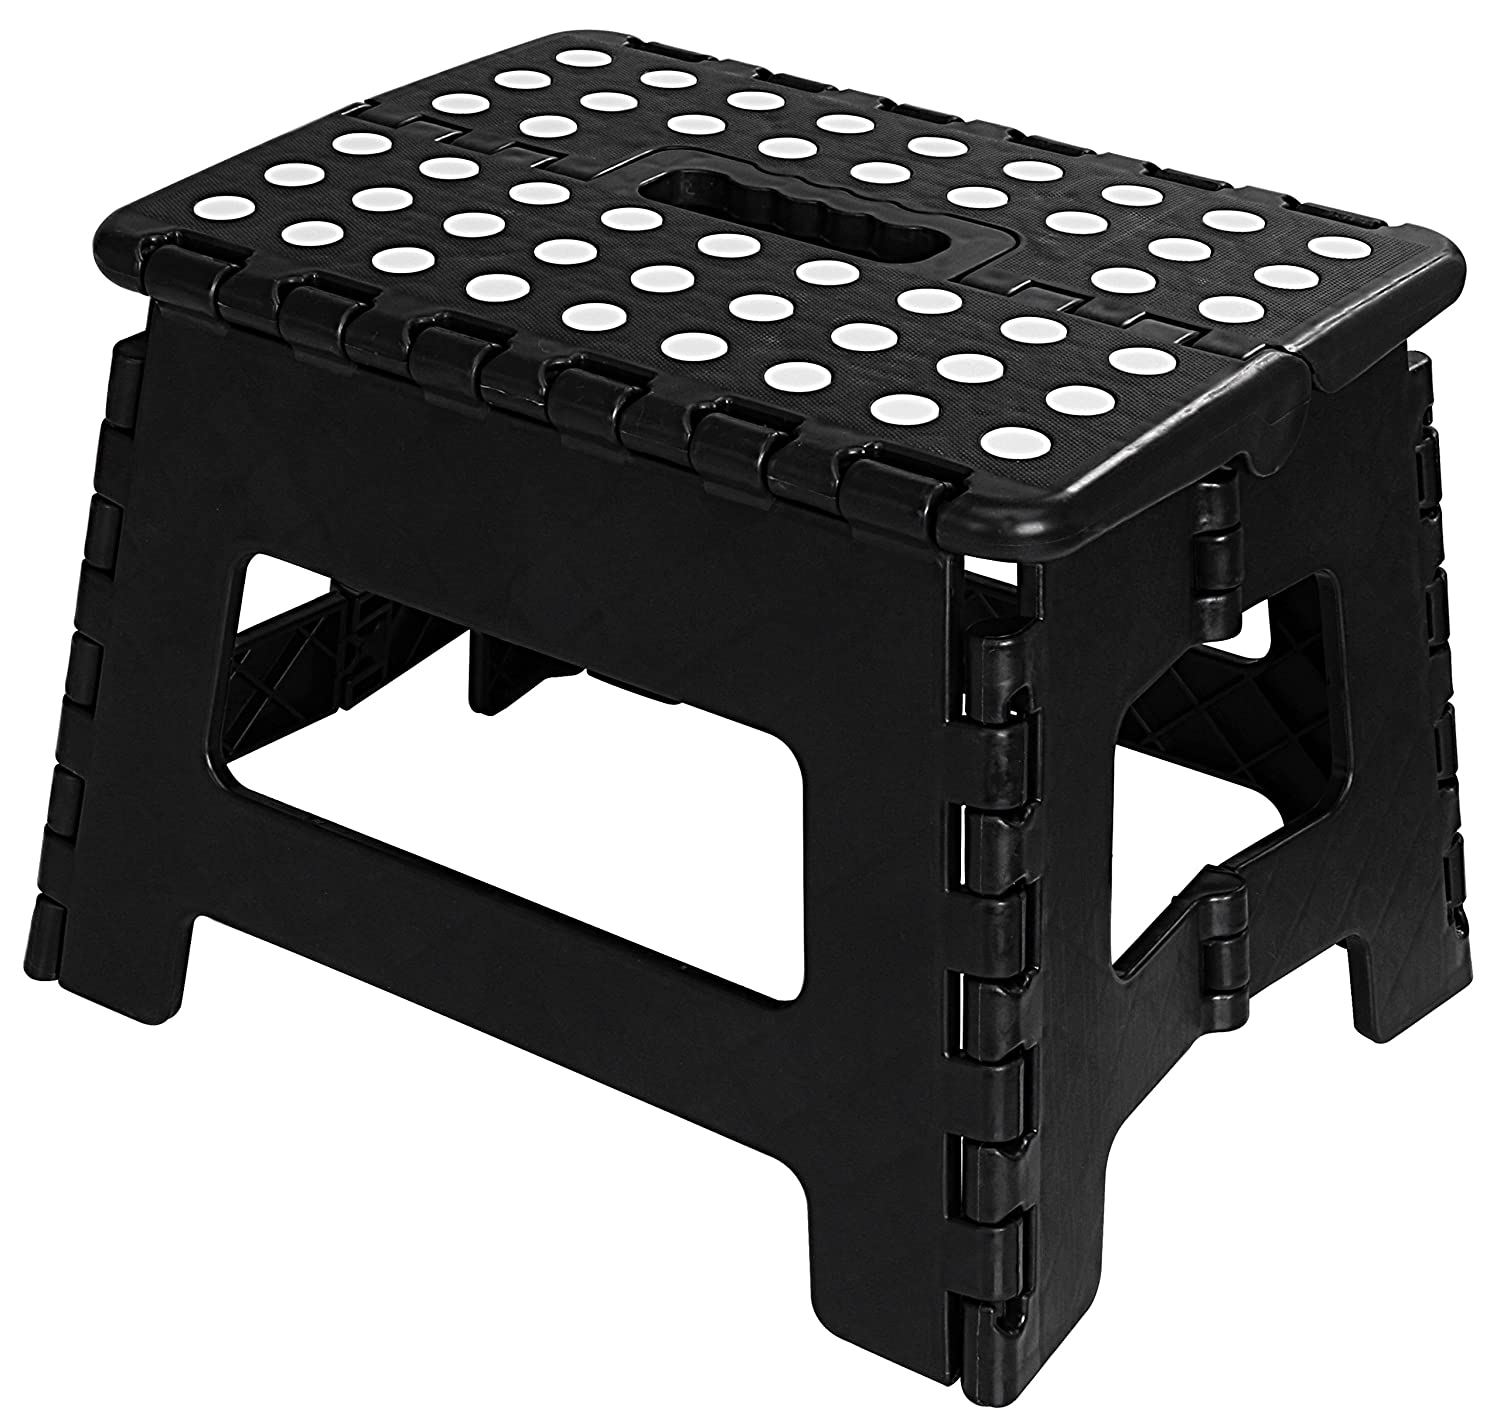 Utopia Home Foldable Step Stool - 11 Inches Wide and 9 Inches Tall - Black and White Color - Light Weight Plastic Design - by UH0286